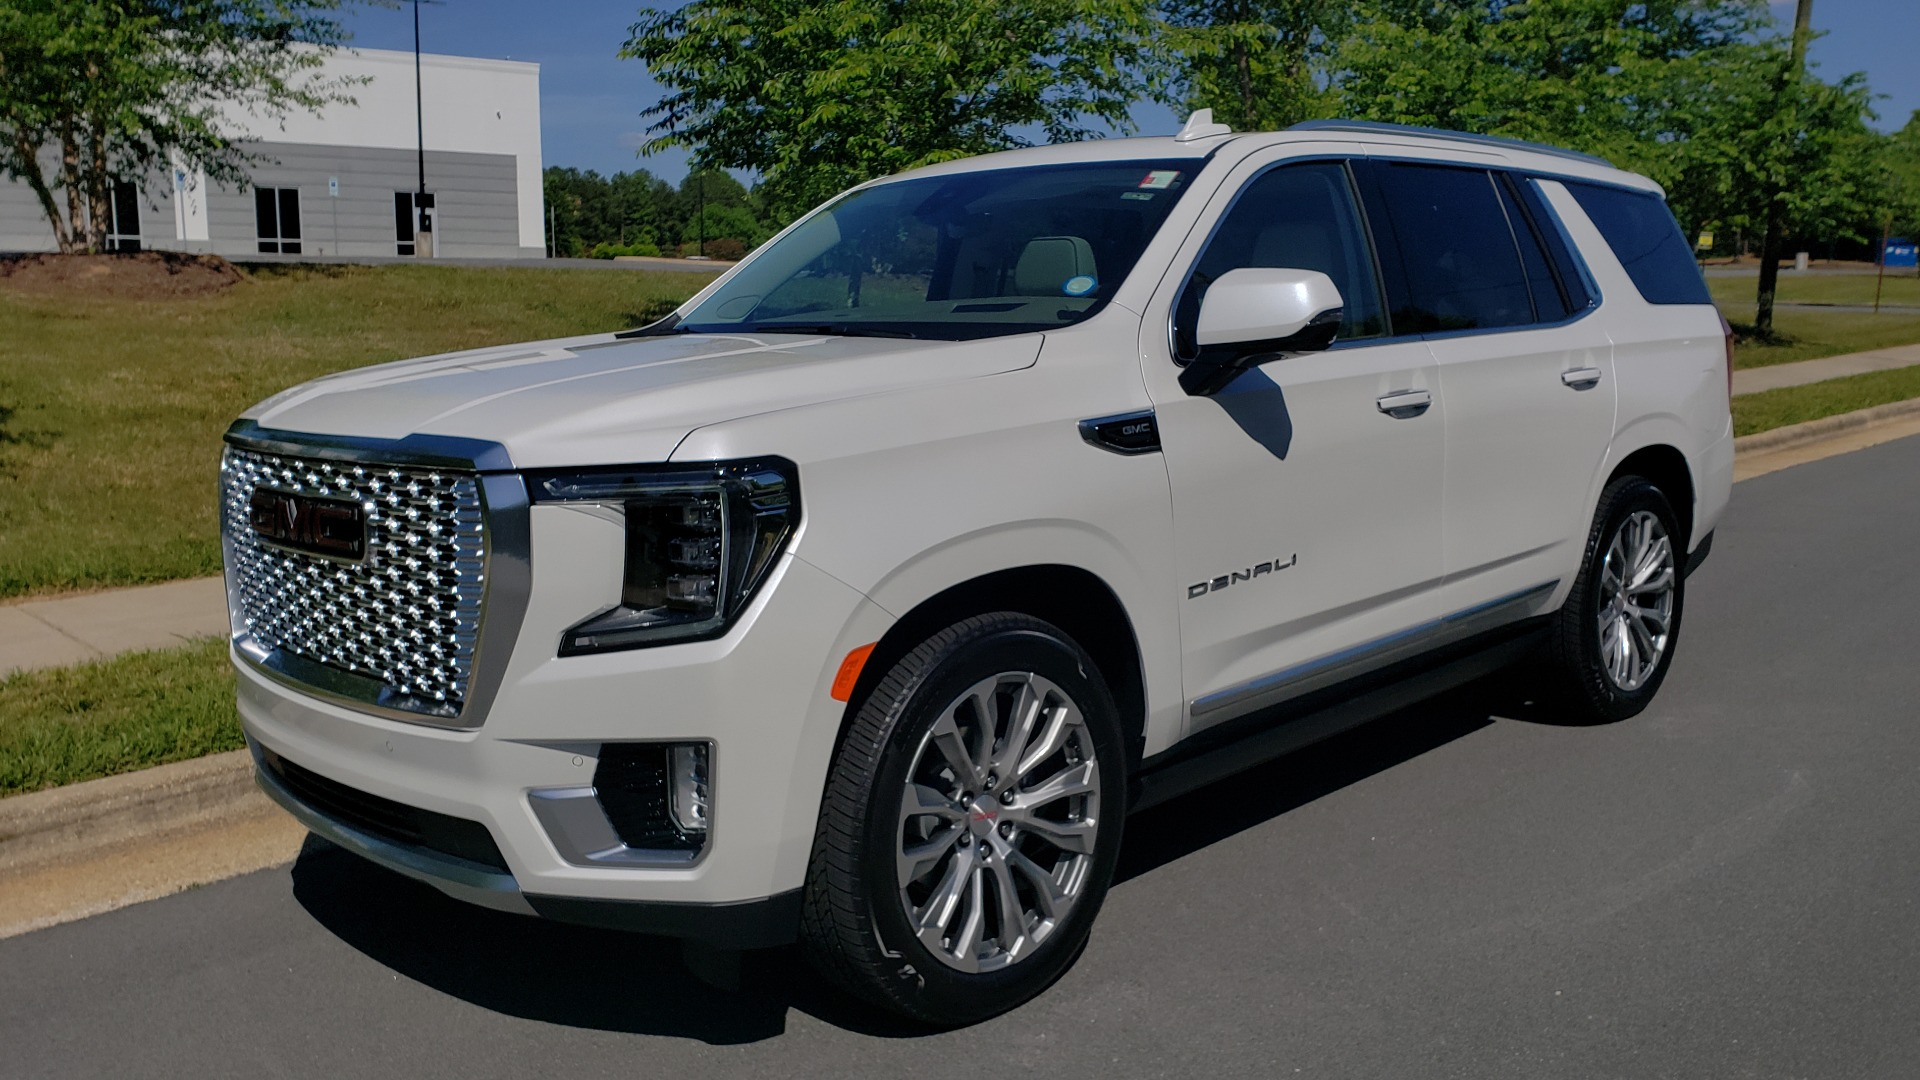 Used 2021 GMC YUKON DENALI PREM / 4WD / NAV / TECH / TRAILER / SECURITY / SUNROOF for sale Sold at Formula Imports in Charlotte NC 28227 1